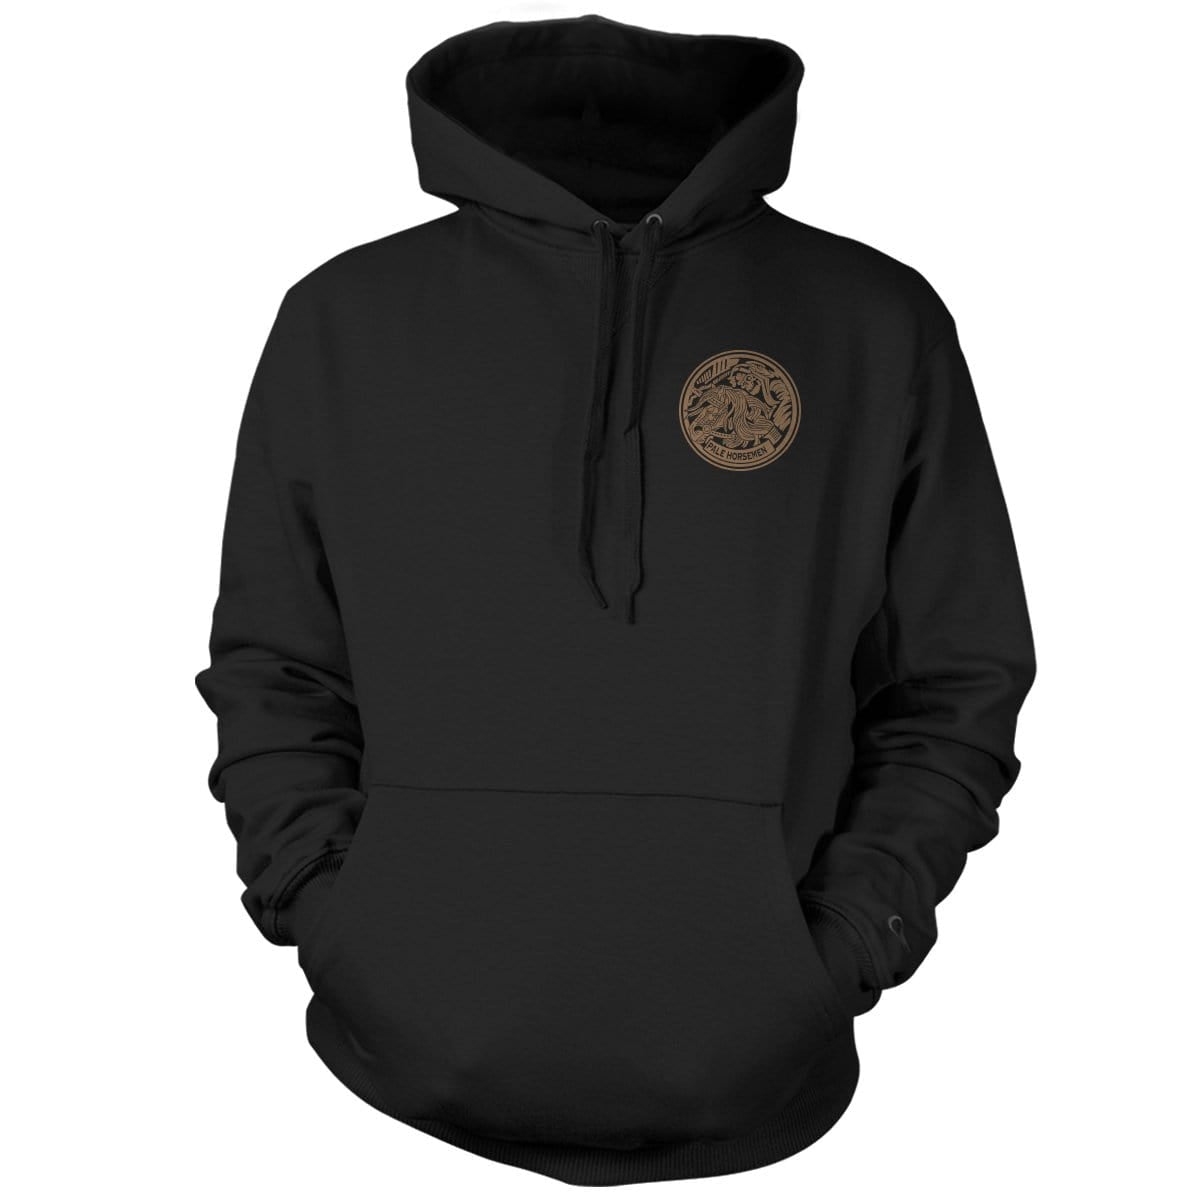 PHUMC Pale Horsemen Chapter Hoodie - Pipe Hitters Union